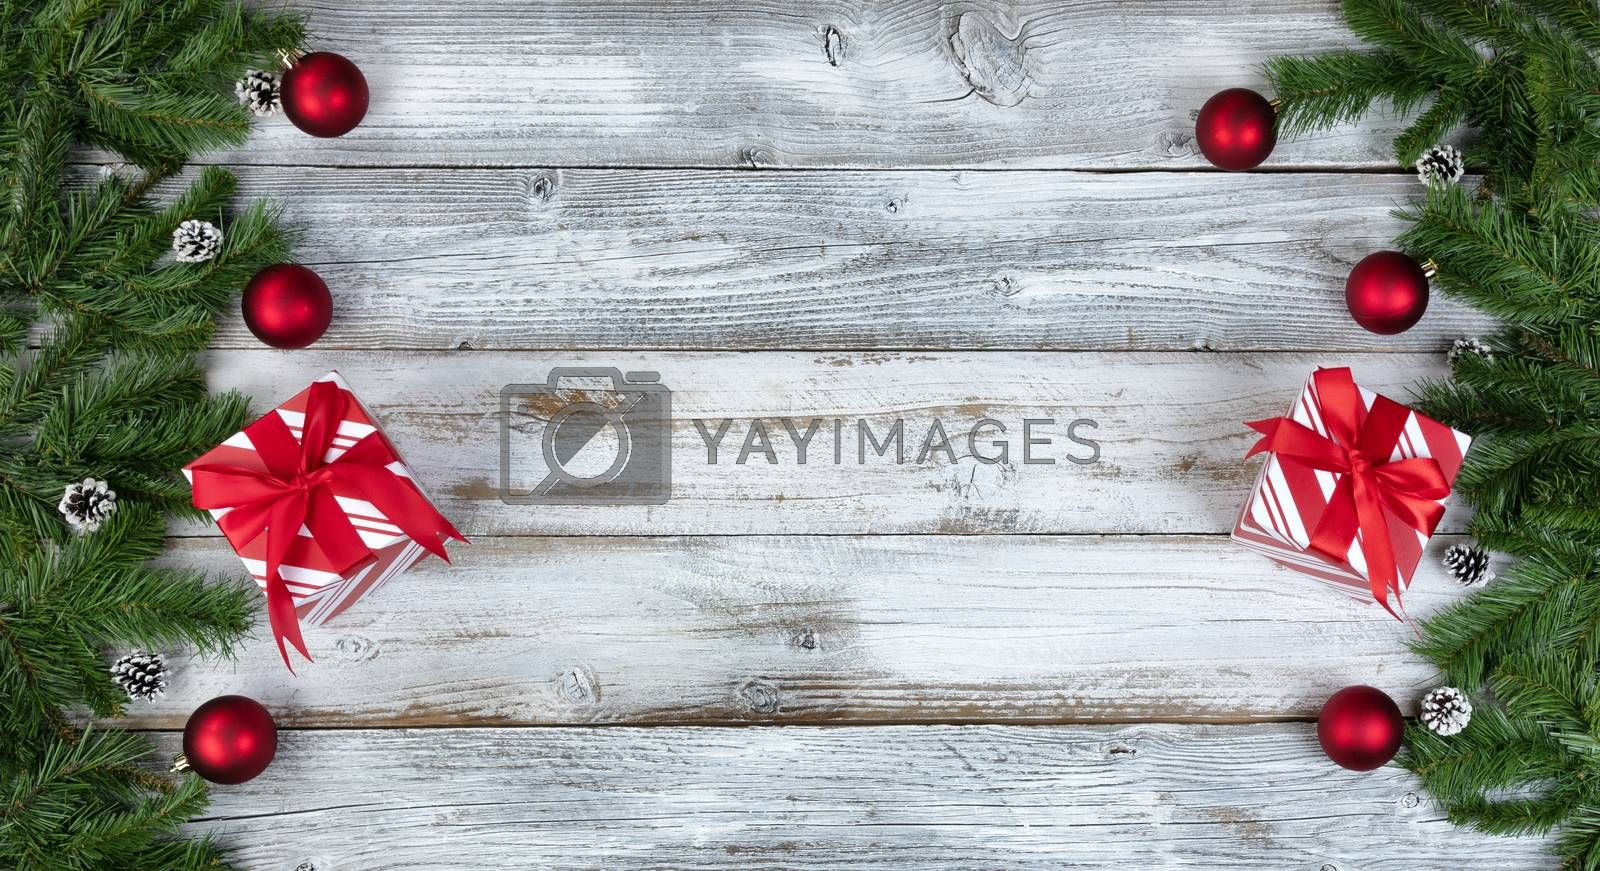 Christmas or New Year holiday theme background with evergreen branches and other decorations on both side borders